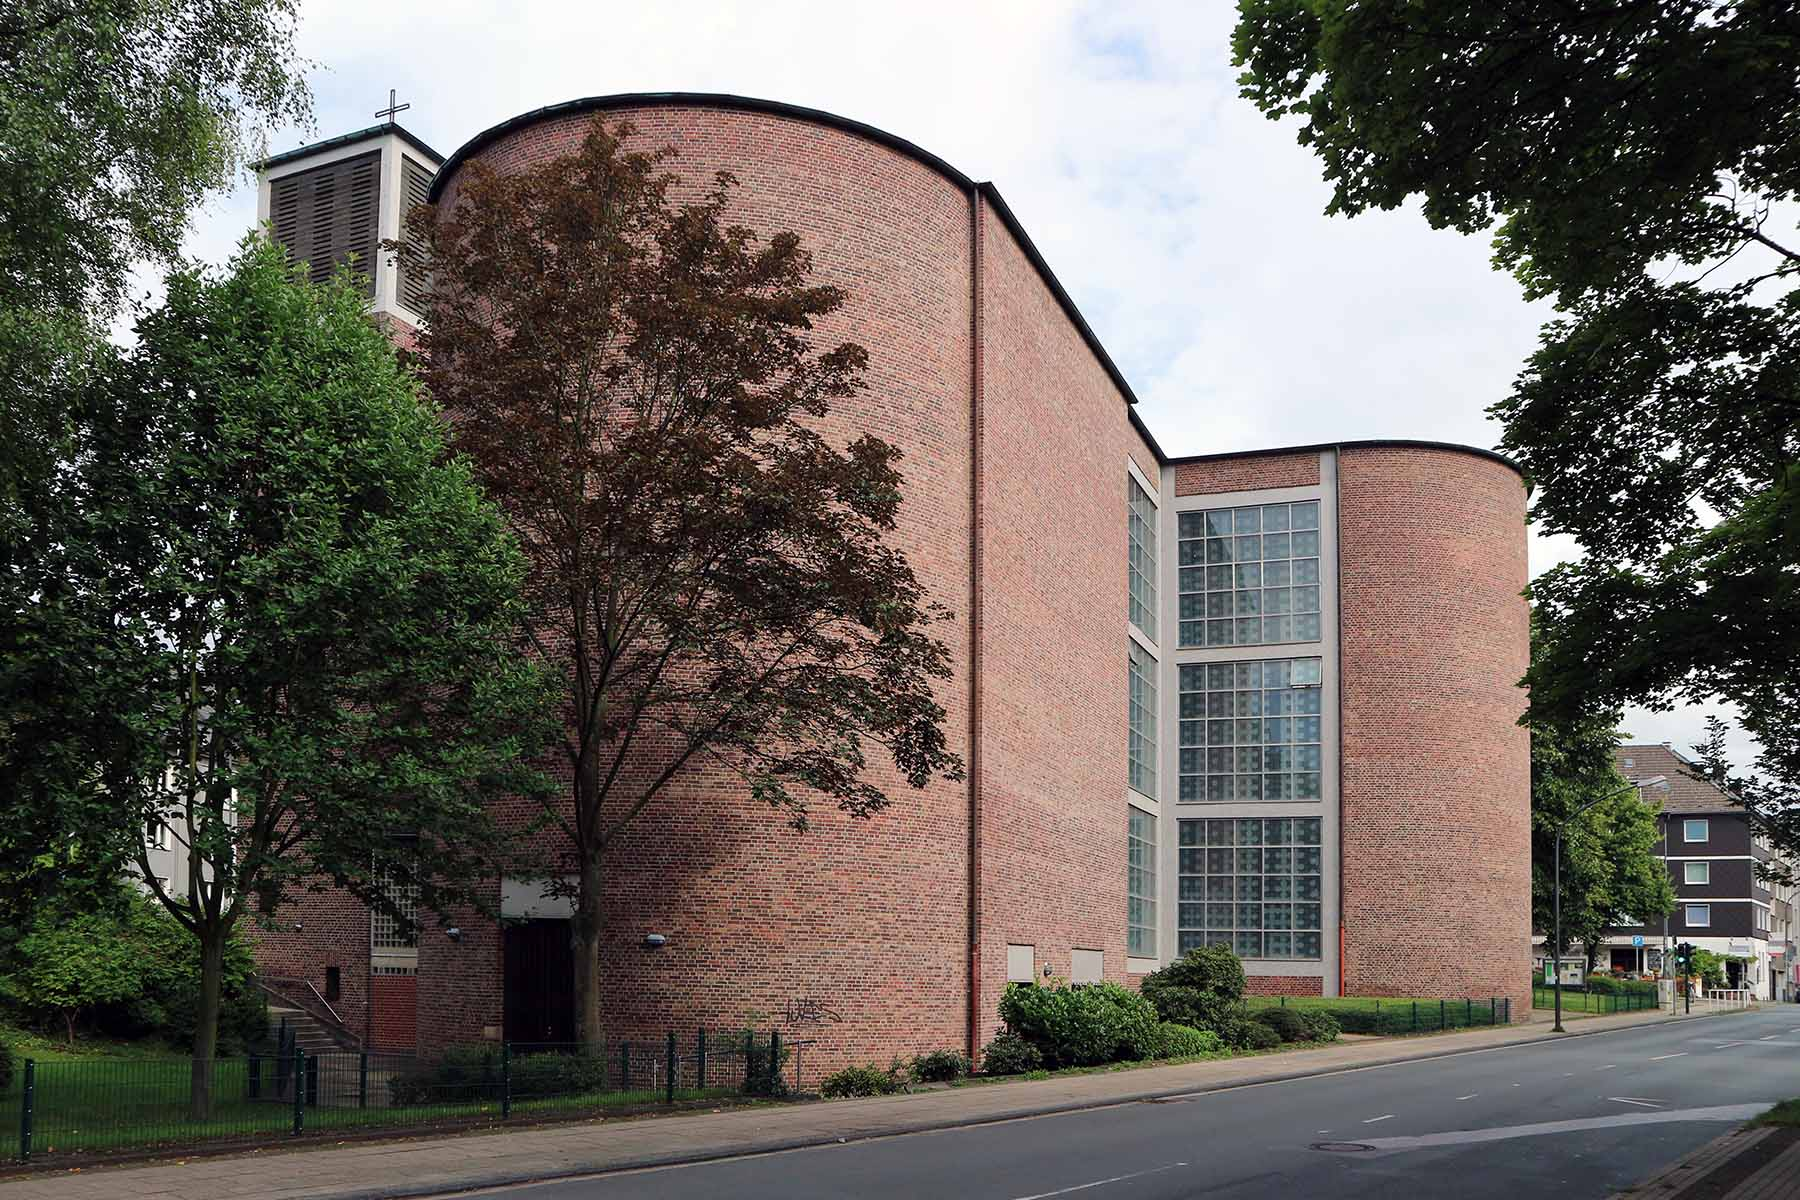 St. Andrew's Church.  Catholic parish church by Rudolf Schwarz and Karl Wimmenauer. Completion: 1957. Brigittastr. 49, 45130 Essen